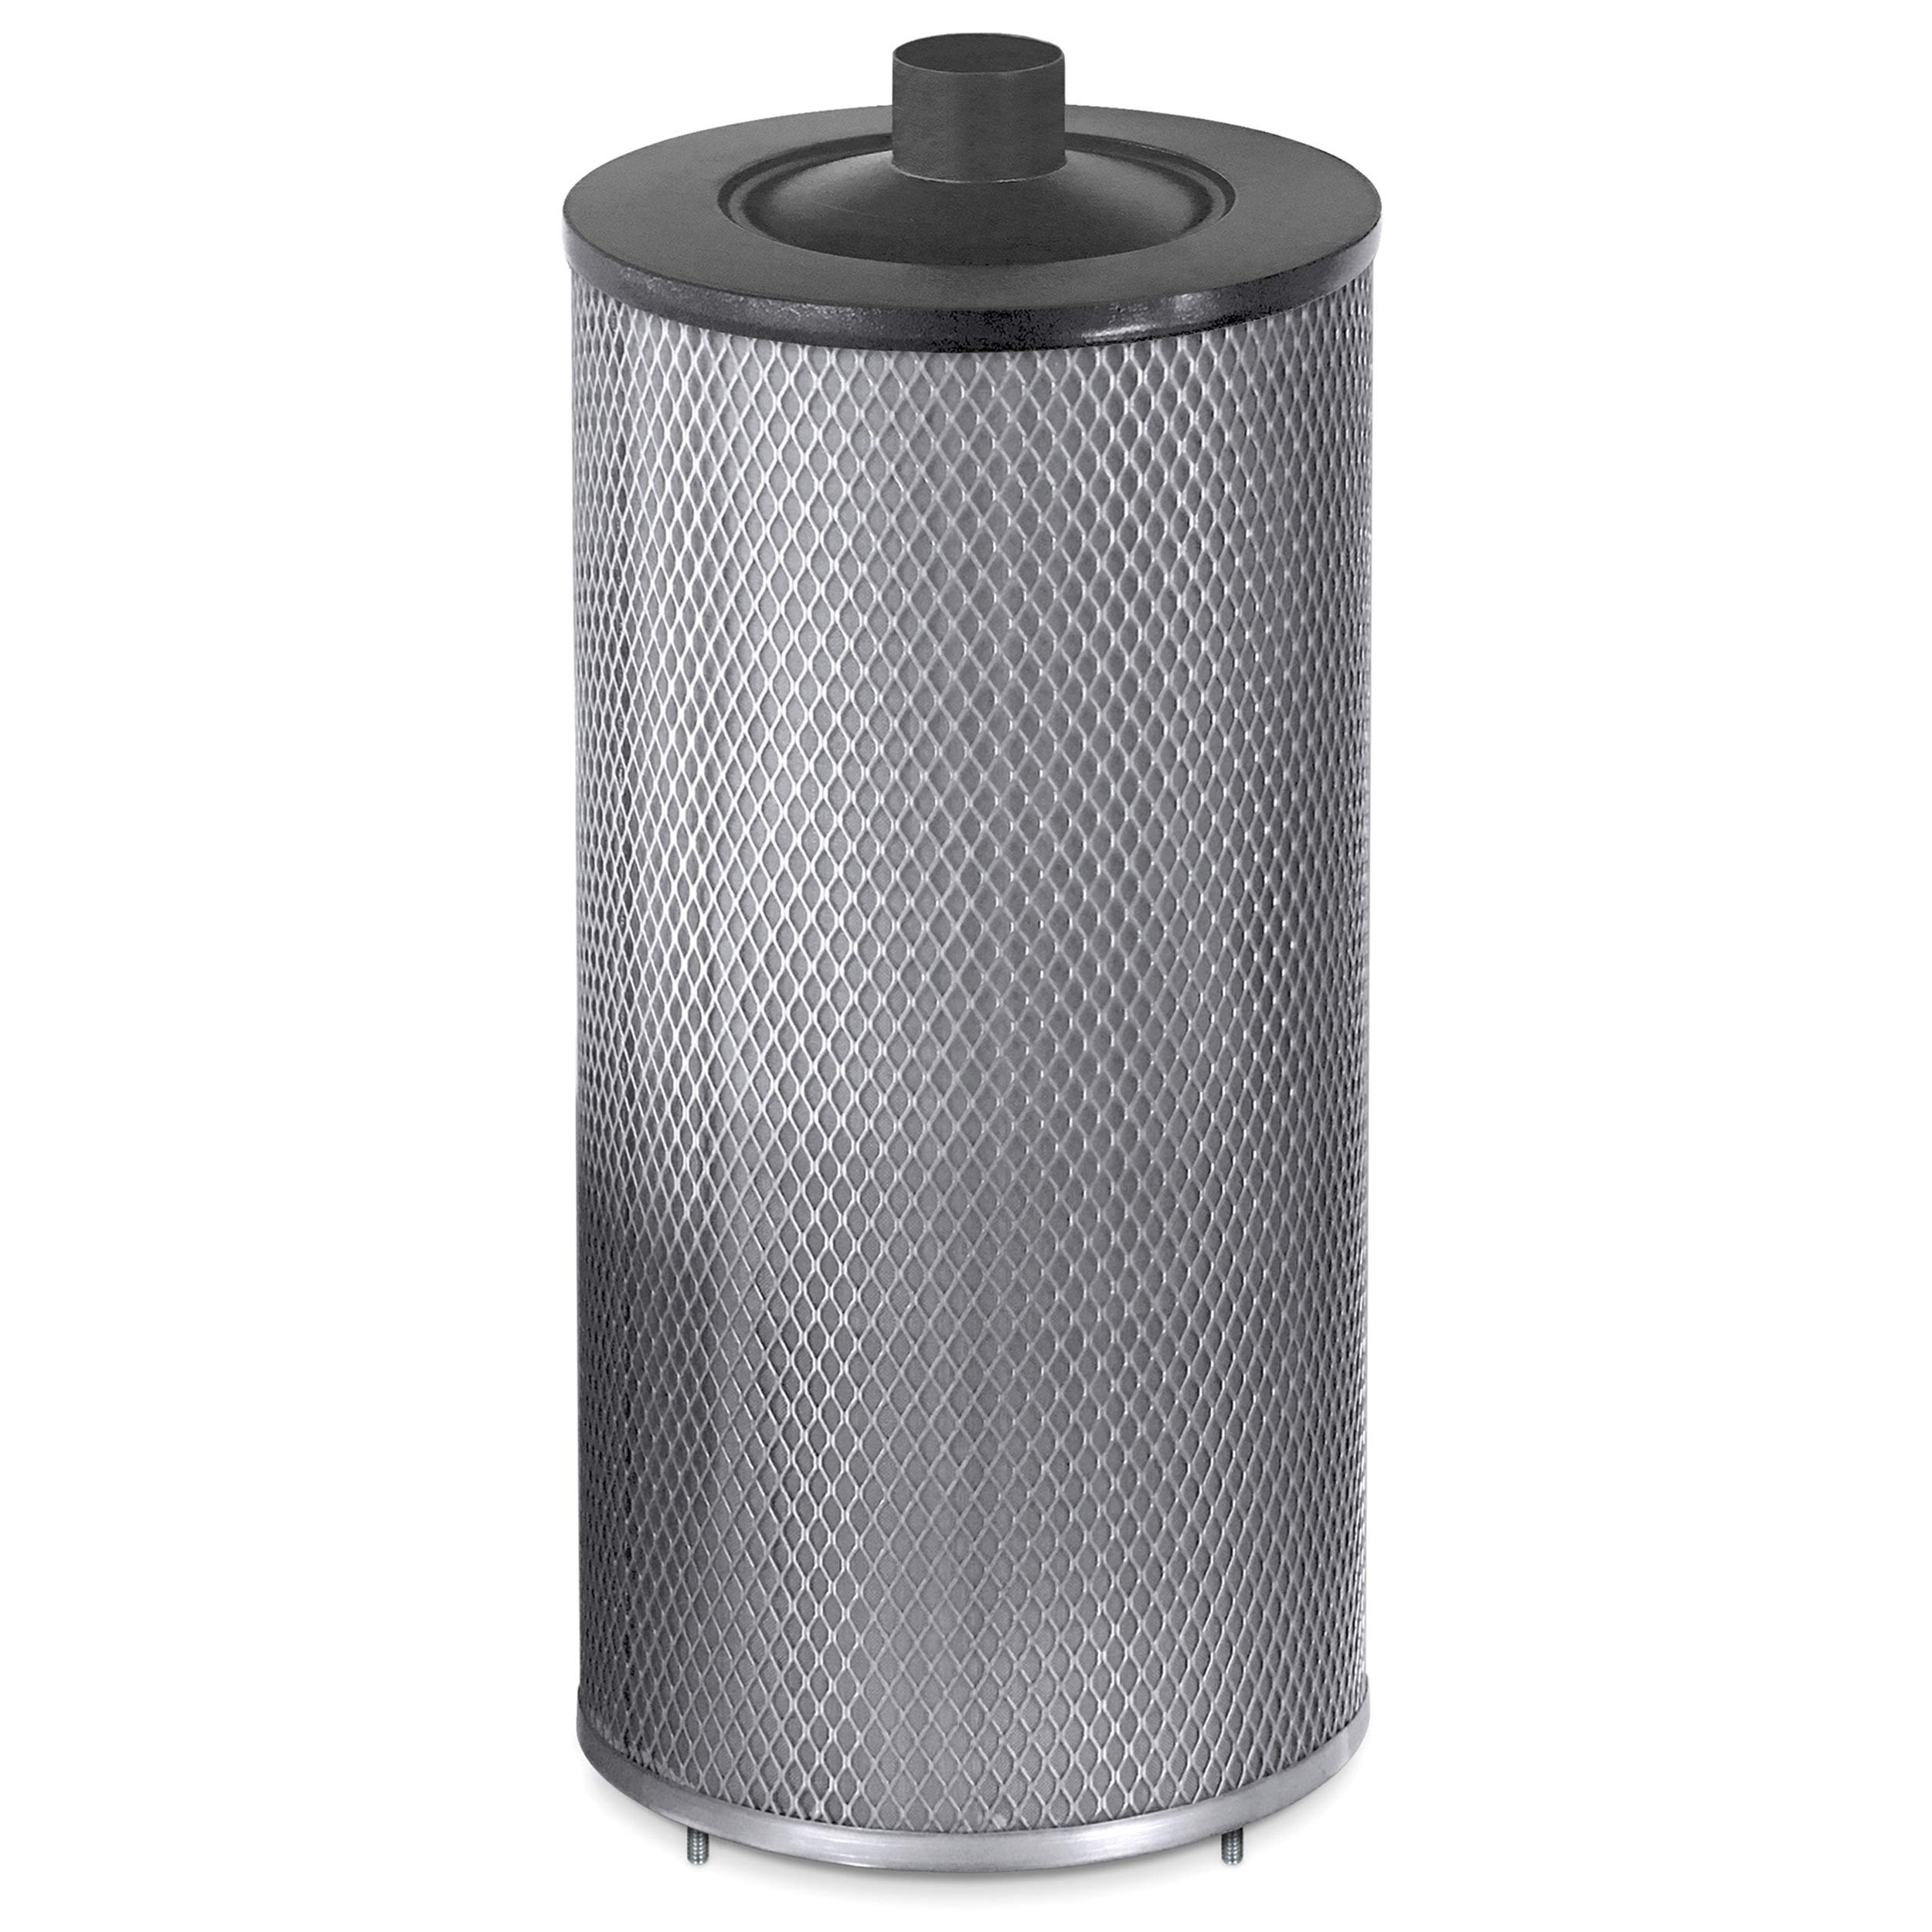 Oneida Air Systems - Replacement Filter for Mini Gorilla